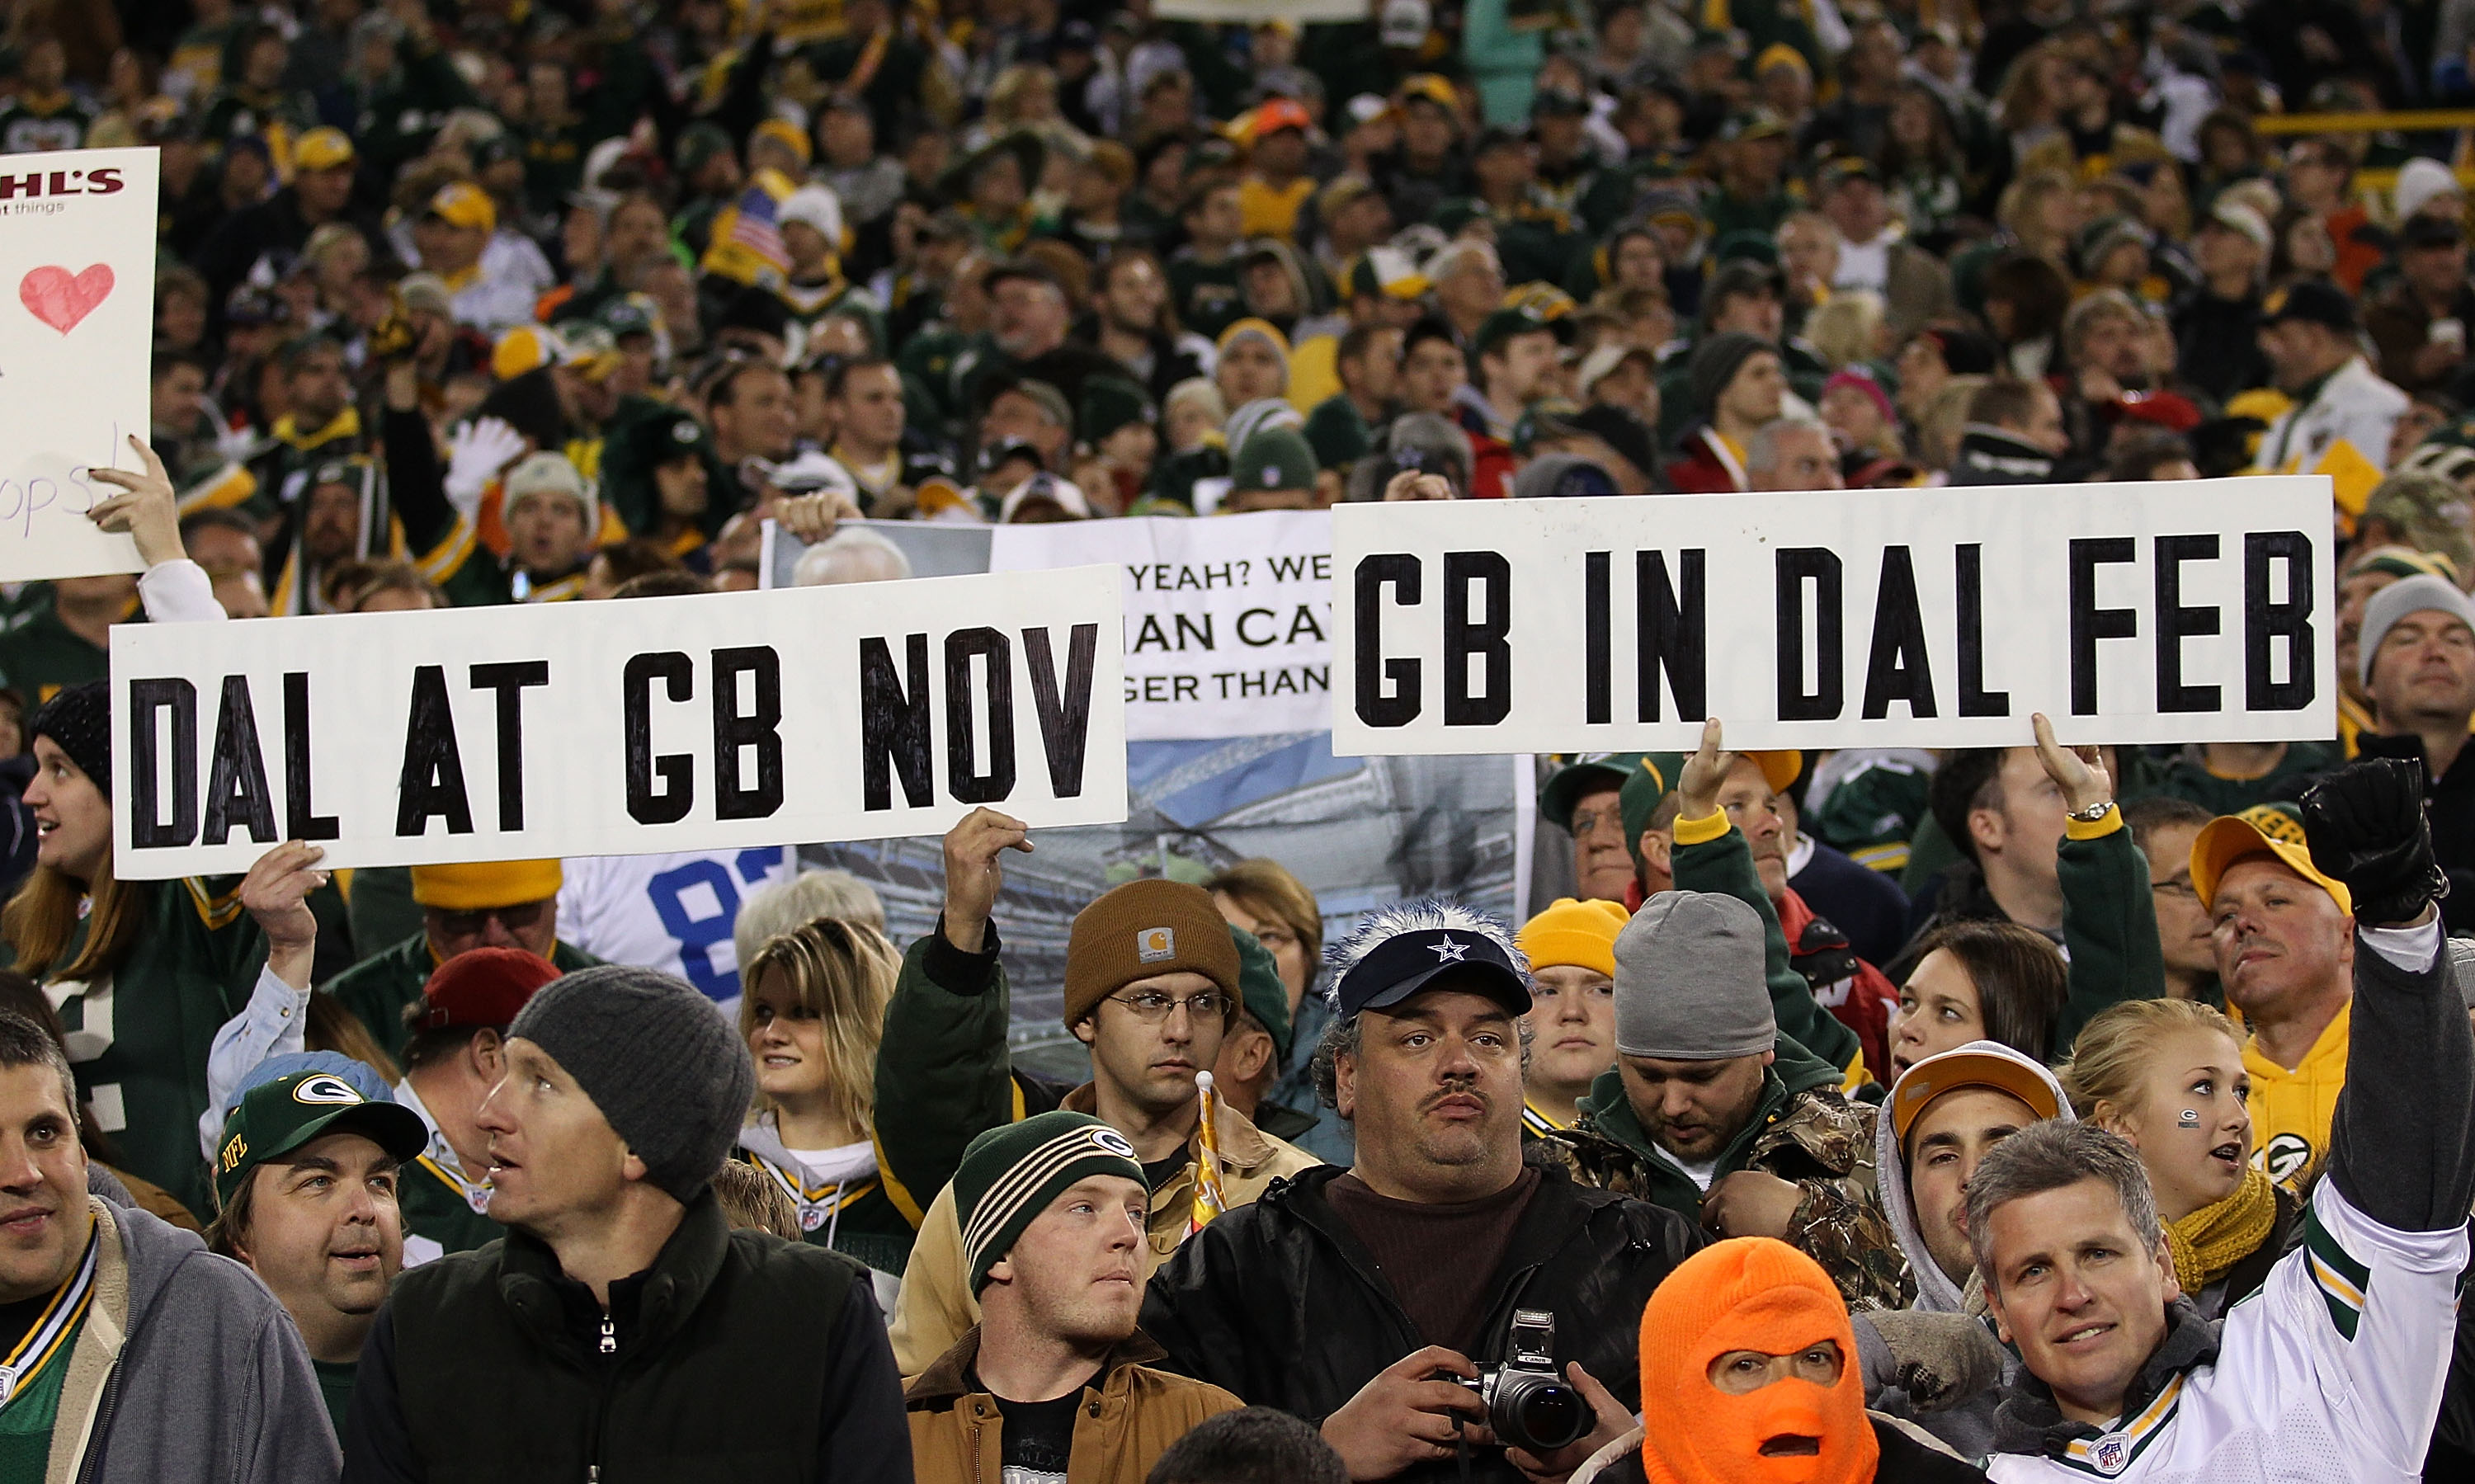 GREEN BAY, WI - NOVEMBER 07: Fans of the Green Bay Packers hold a sign during a game against the Dallas Cowboys at Lambeau Field on November 7, 2010 in Green Bay, Wisconsin. (Photo by Jonathan Daniel/Getty Images)